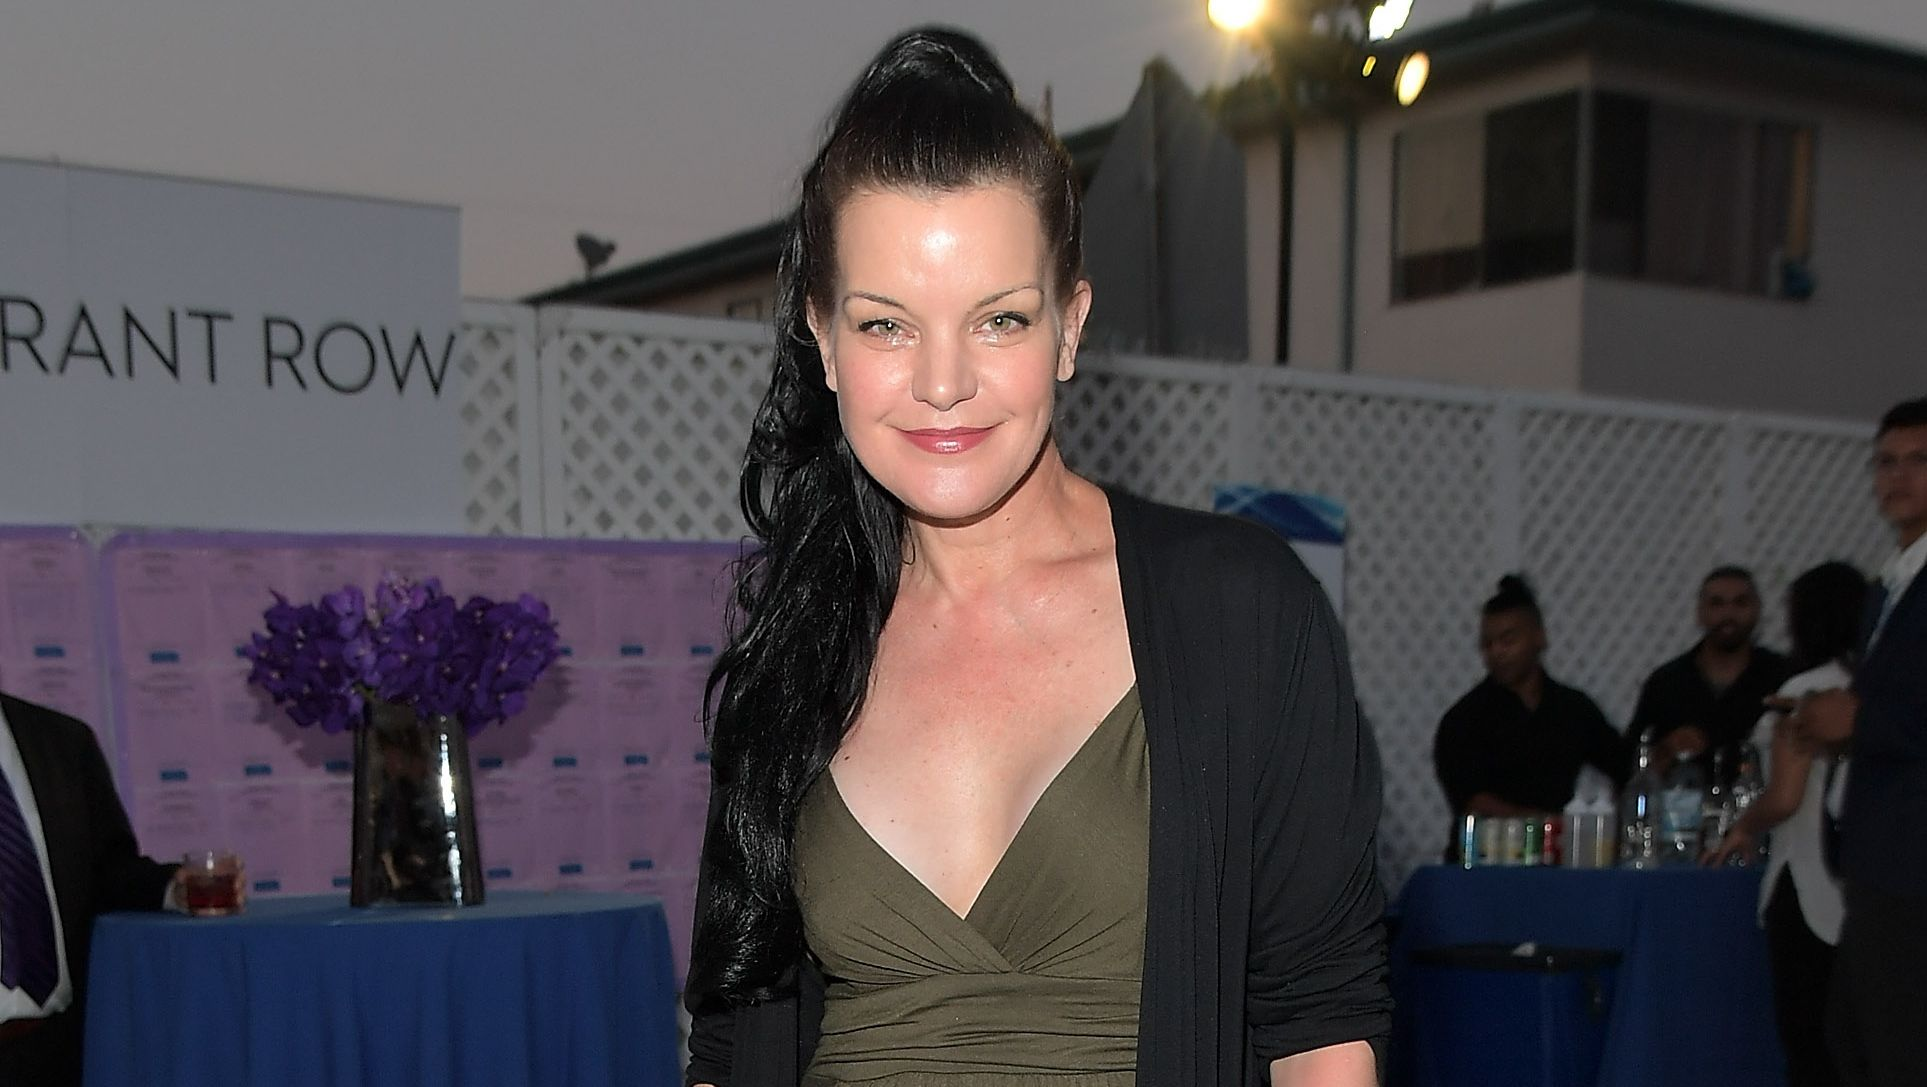 Abby Suto From Ncis Porn - NCIS' Pauley Perrette Opens Up and Thanks Fans For Support ...